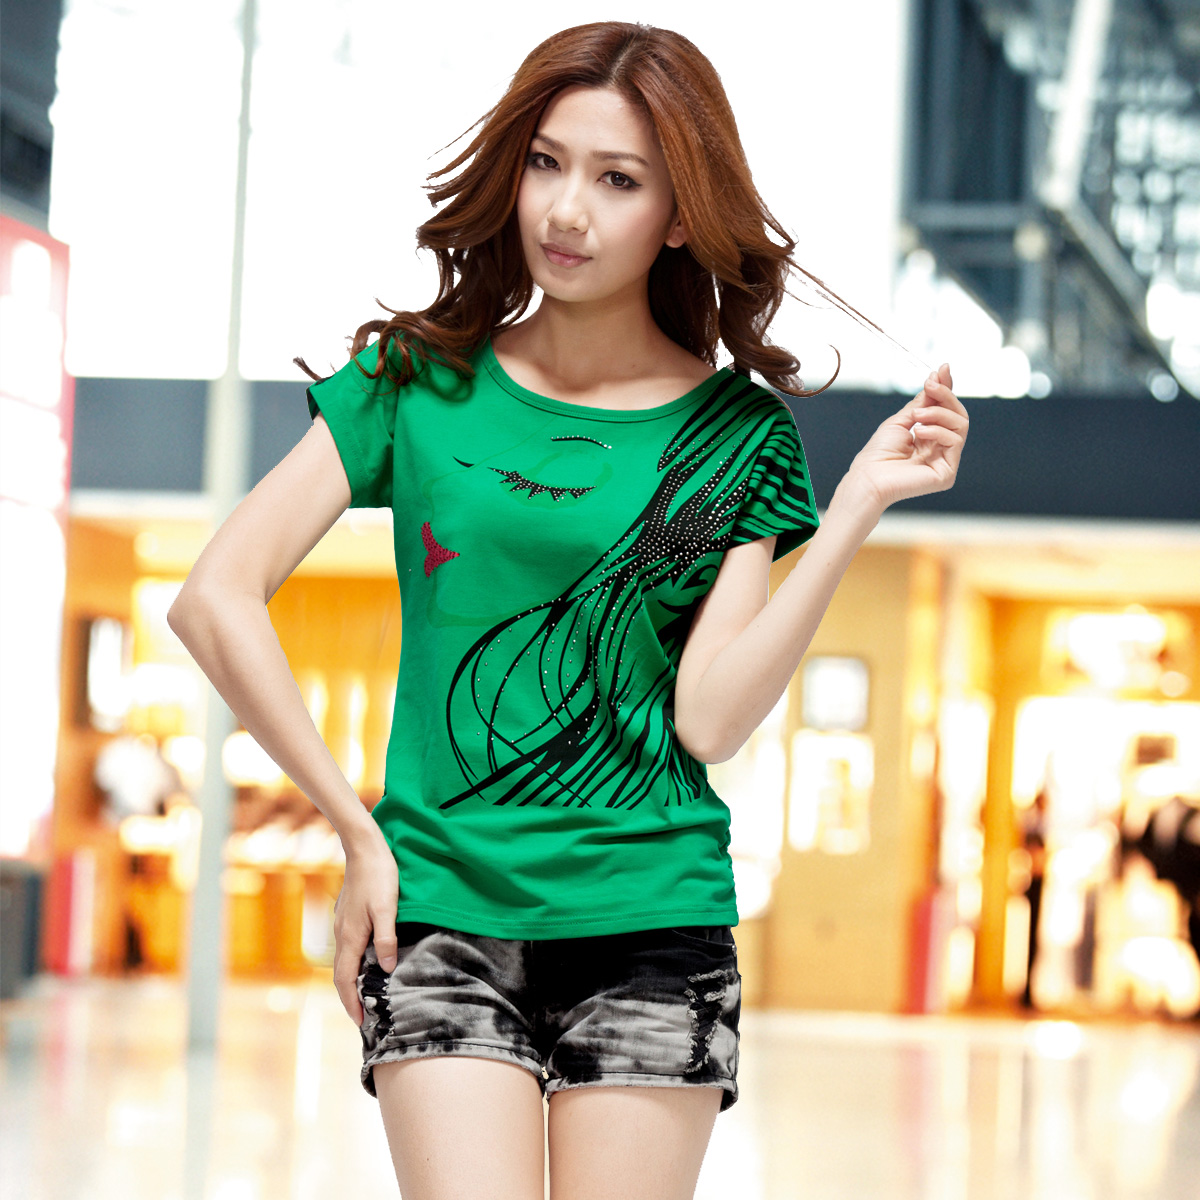 Wang Dan 2013 summer clothing female Korean loose new ladies ' short sleeve t shirt plus size t shirts clothing girl 3,325